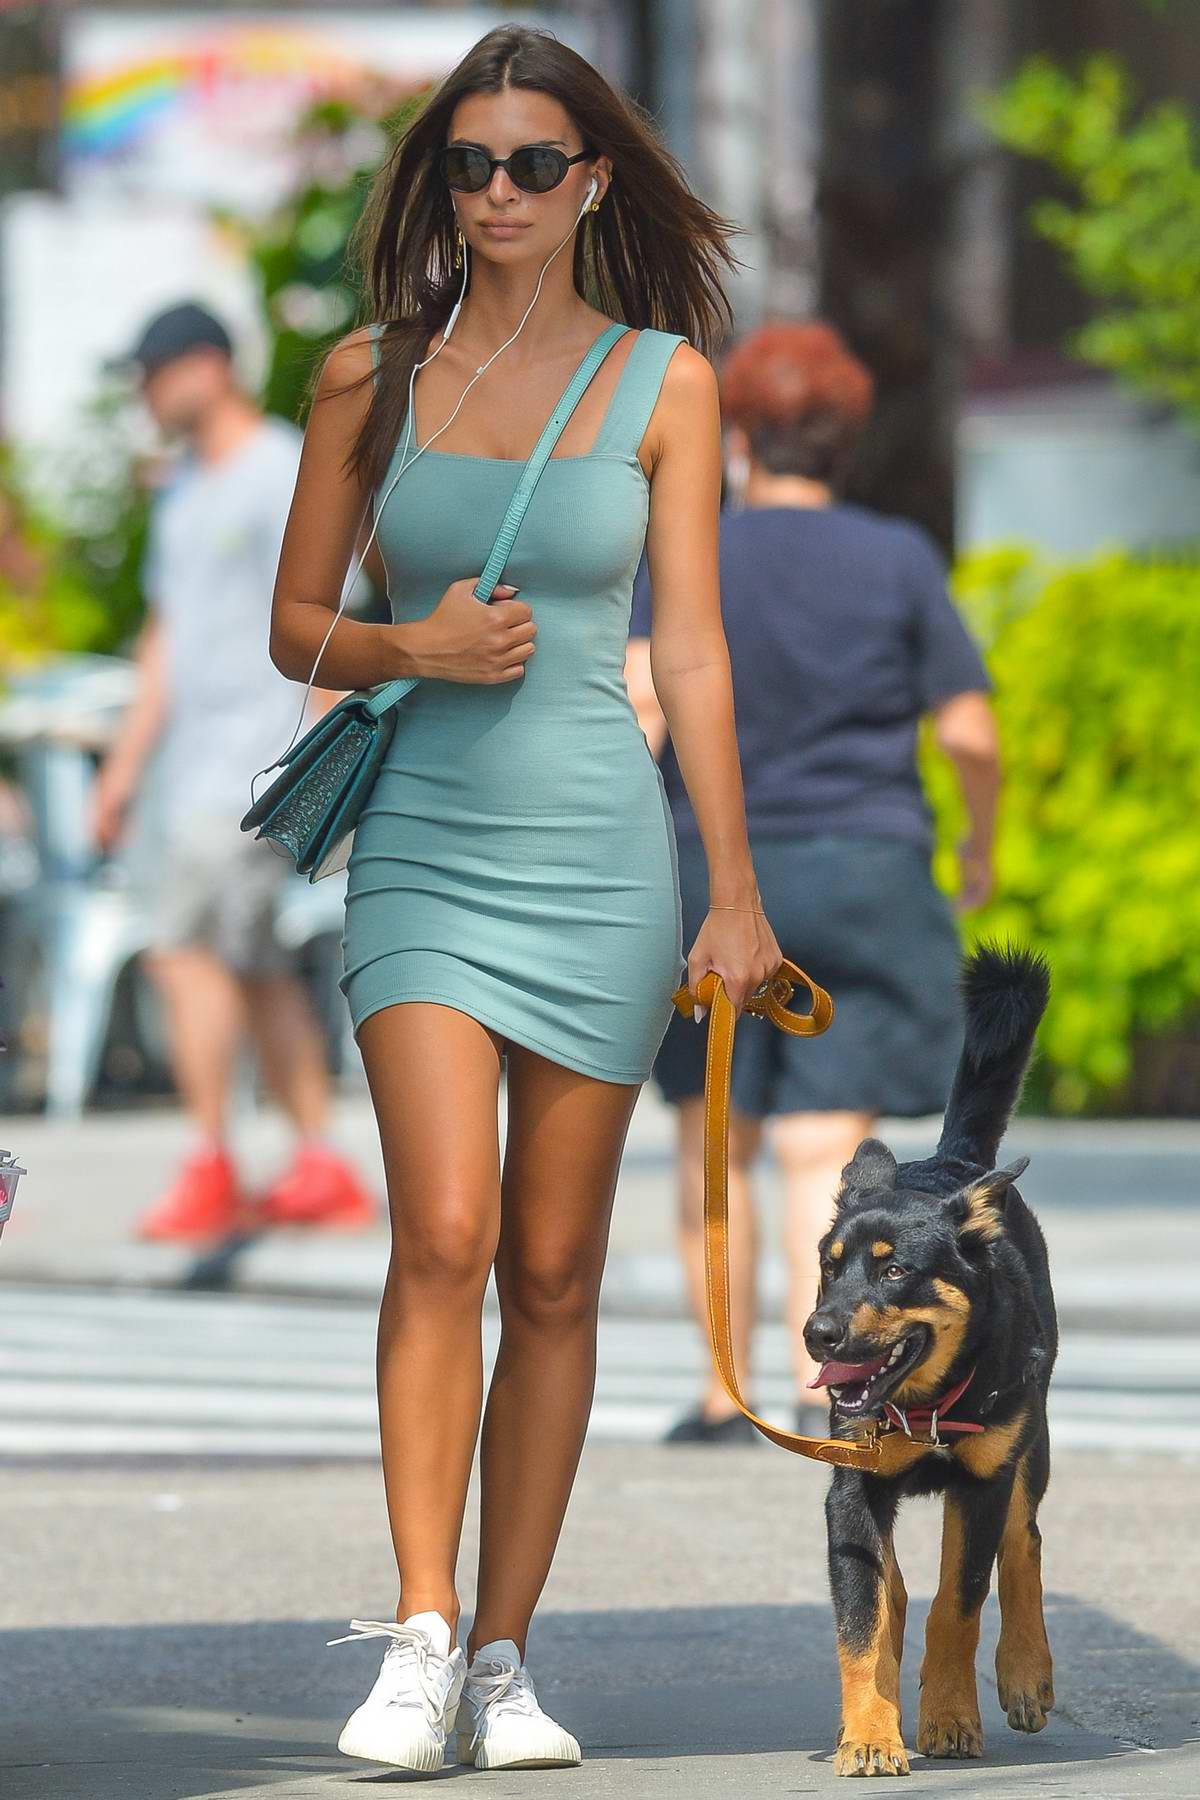 Emily Ratajkowski looks great in a blue mini dress and white sneakers while out with her dog in New York City